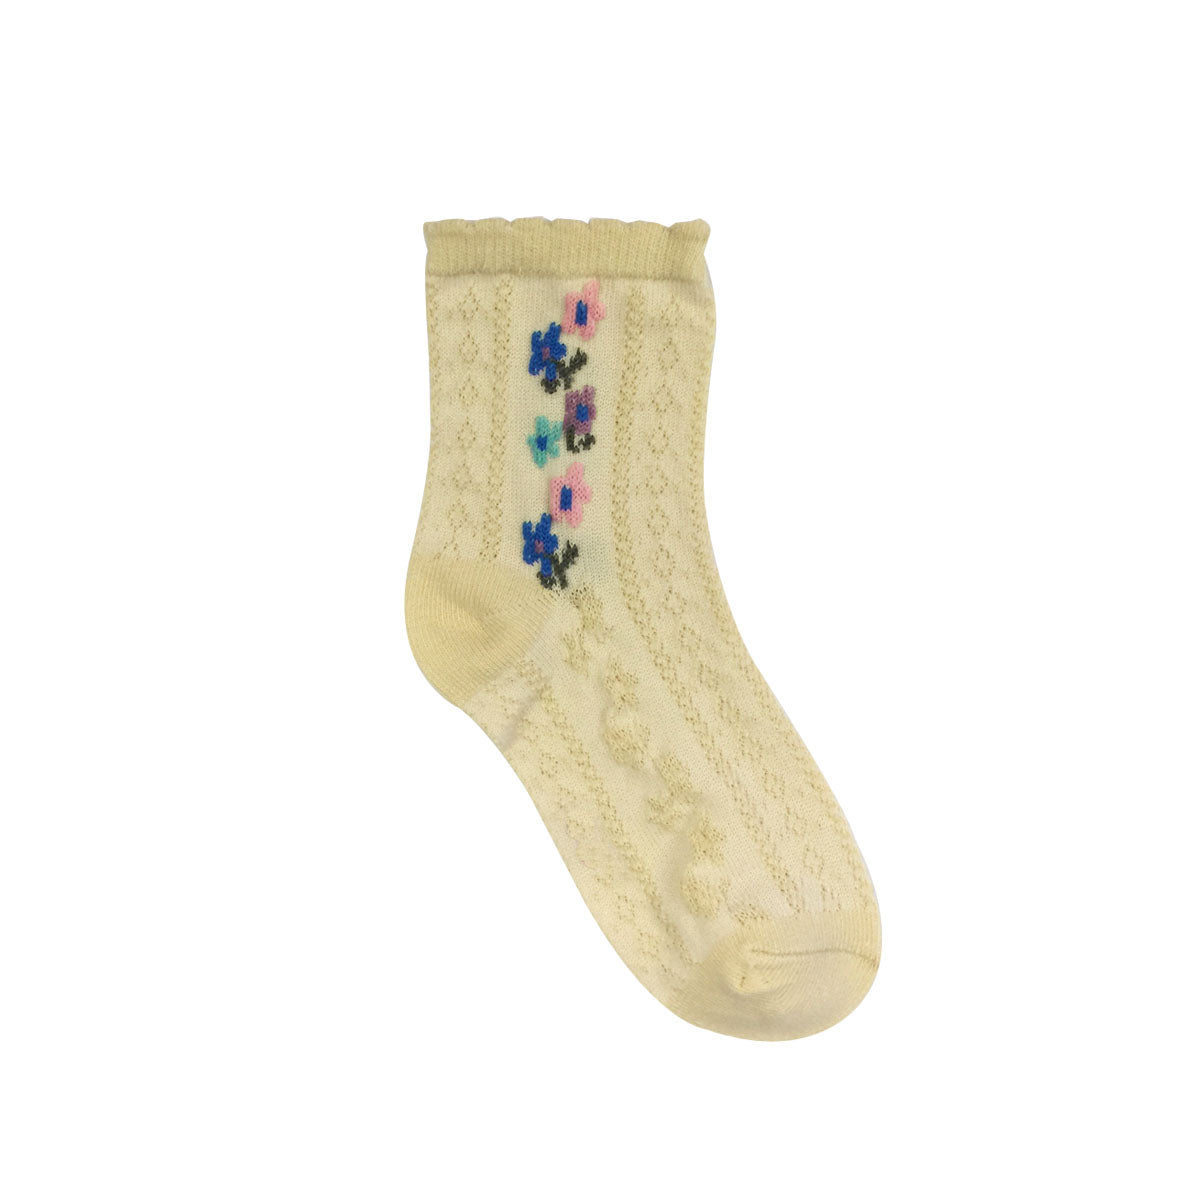 Wrapables Vintage Floral Pattern Toddler Socks (Set of 5)